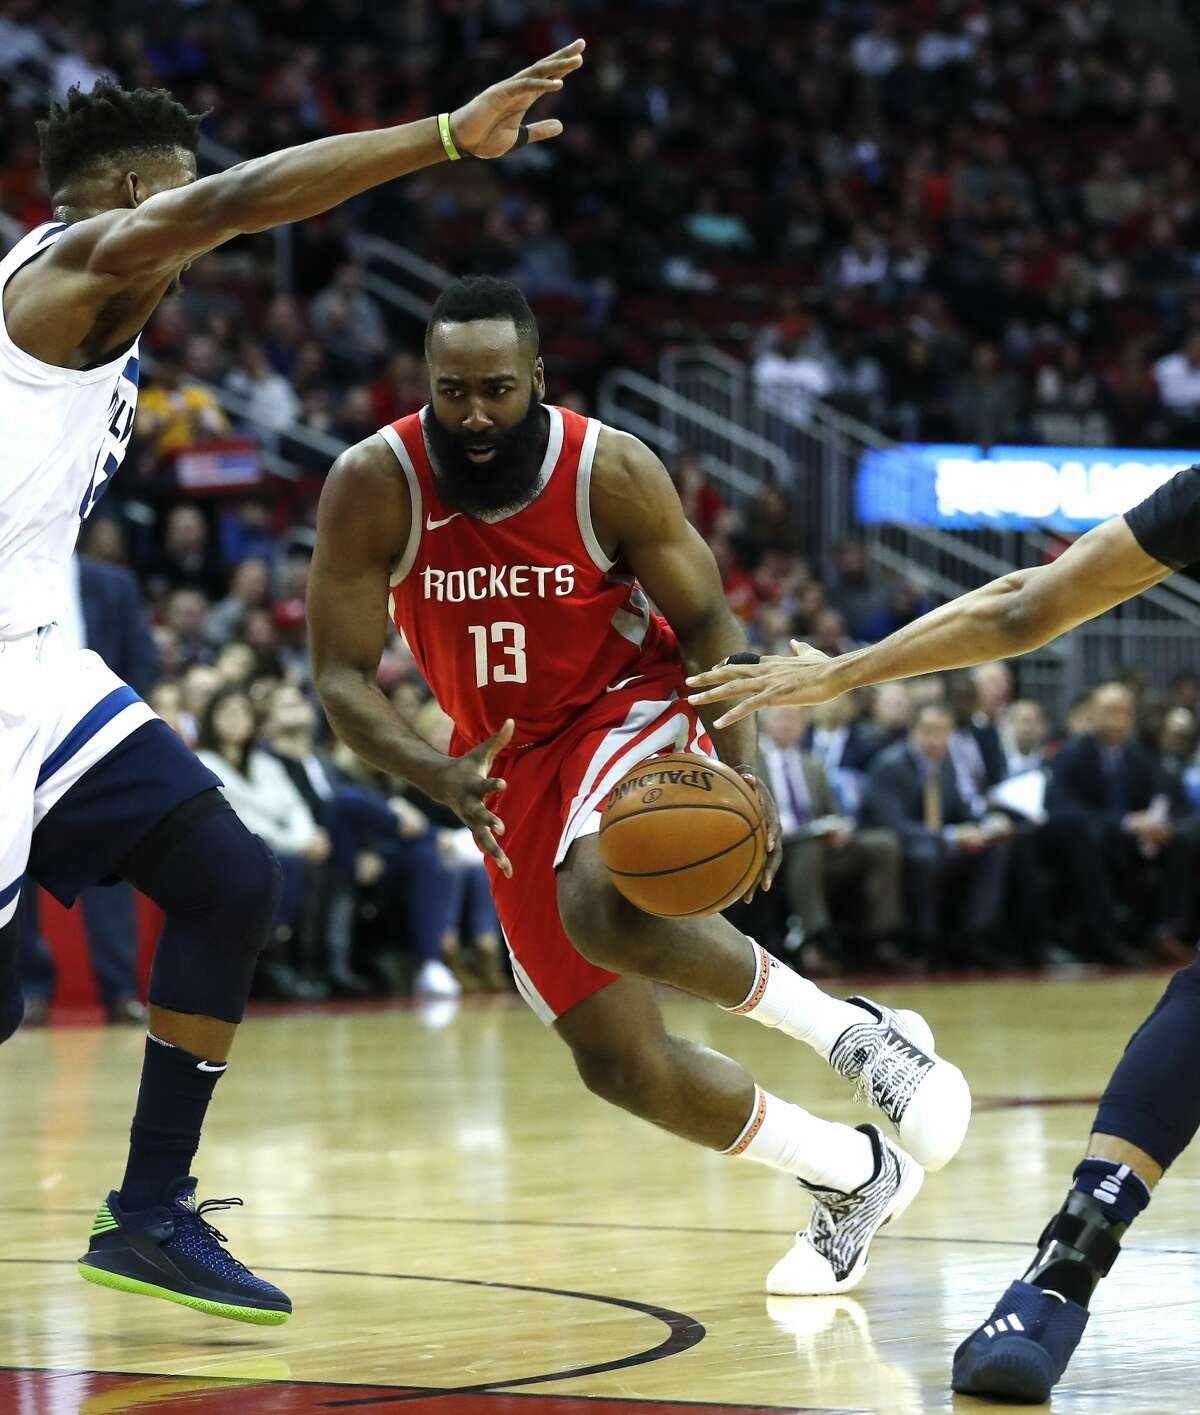 Houston Rockets guard James Harden (13) runs through a pair of defenders during the first half of an NBA basketball game against the Minnesota Timberwolves at Toyota Center on Thursday, Jan. 18, 2018, in Houston. ( Brett Coomer / Houston Chronicle )